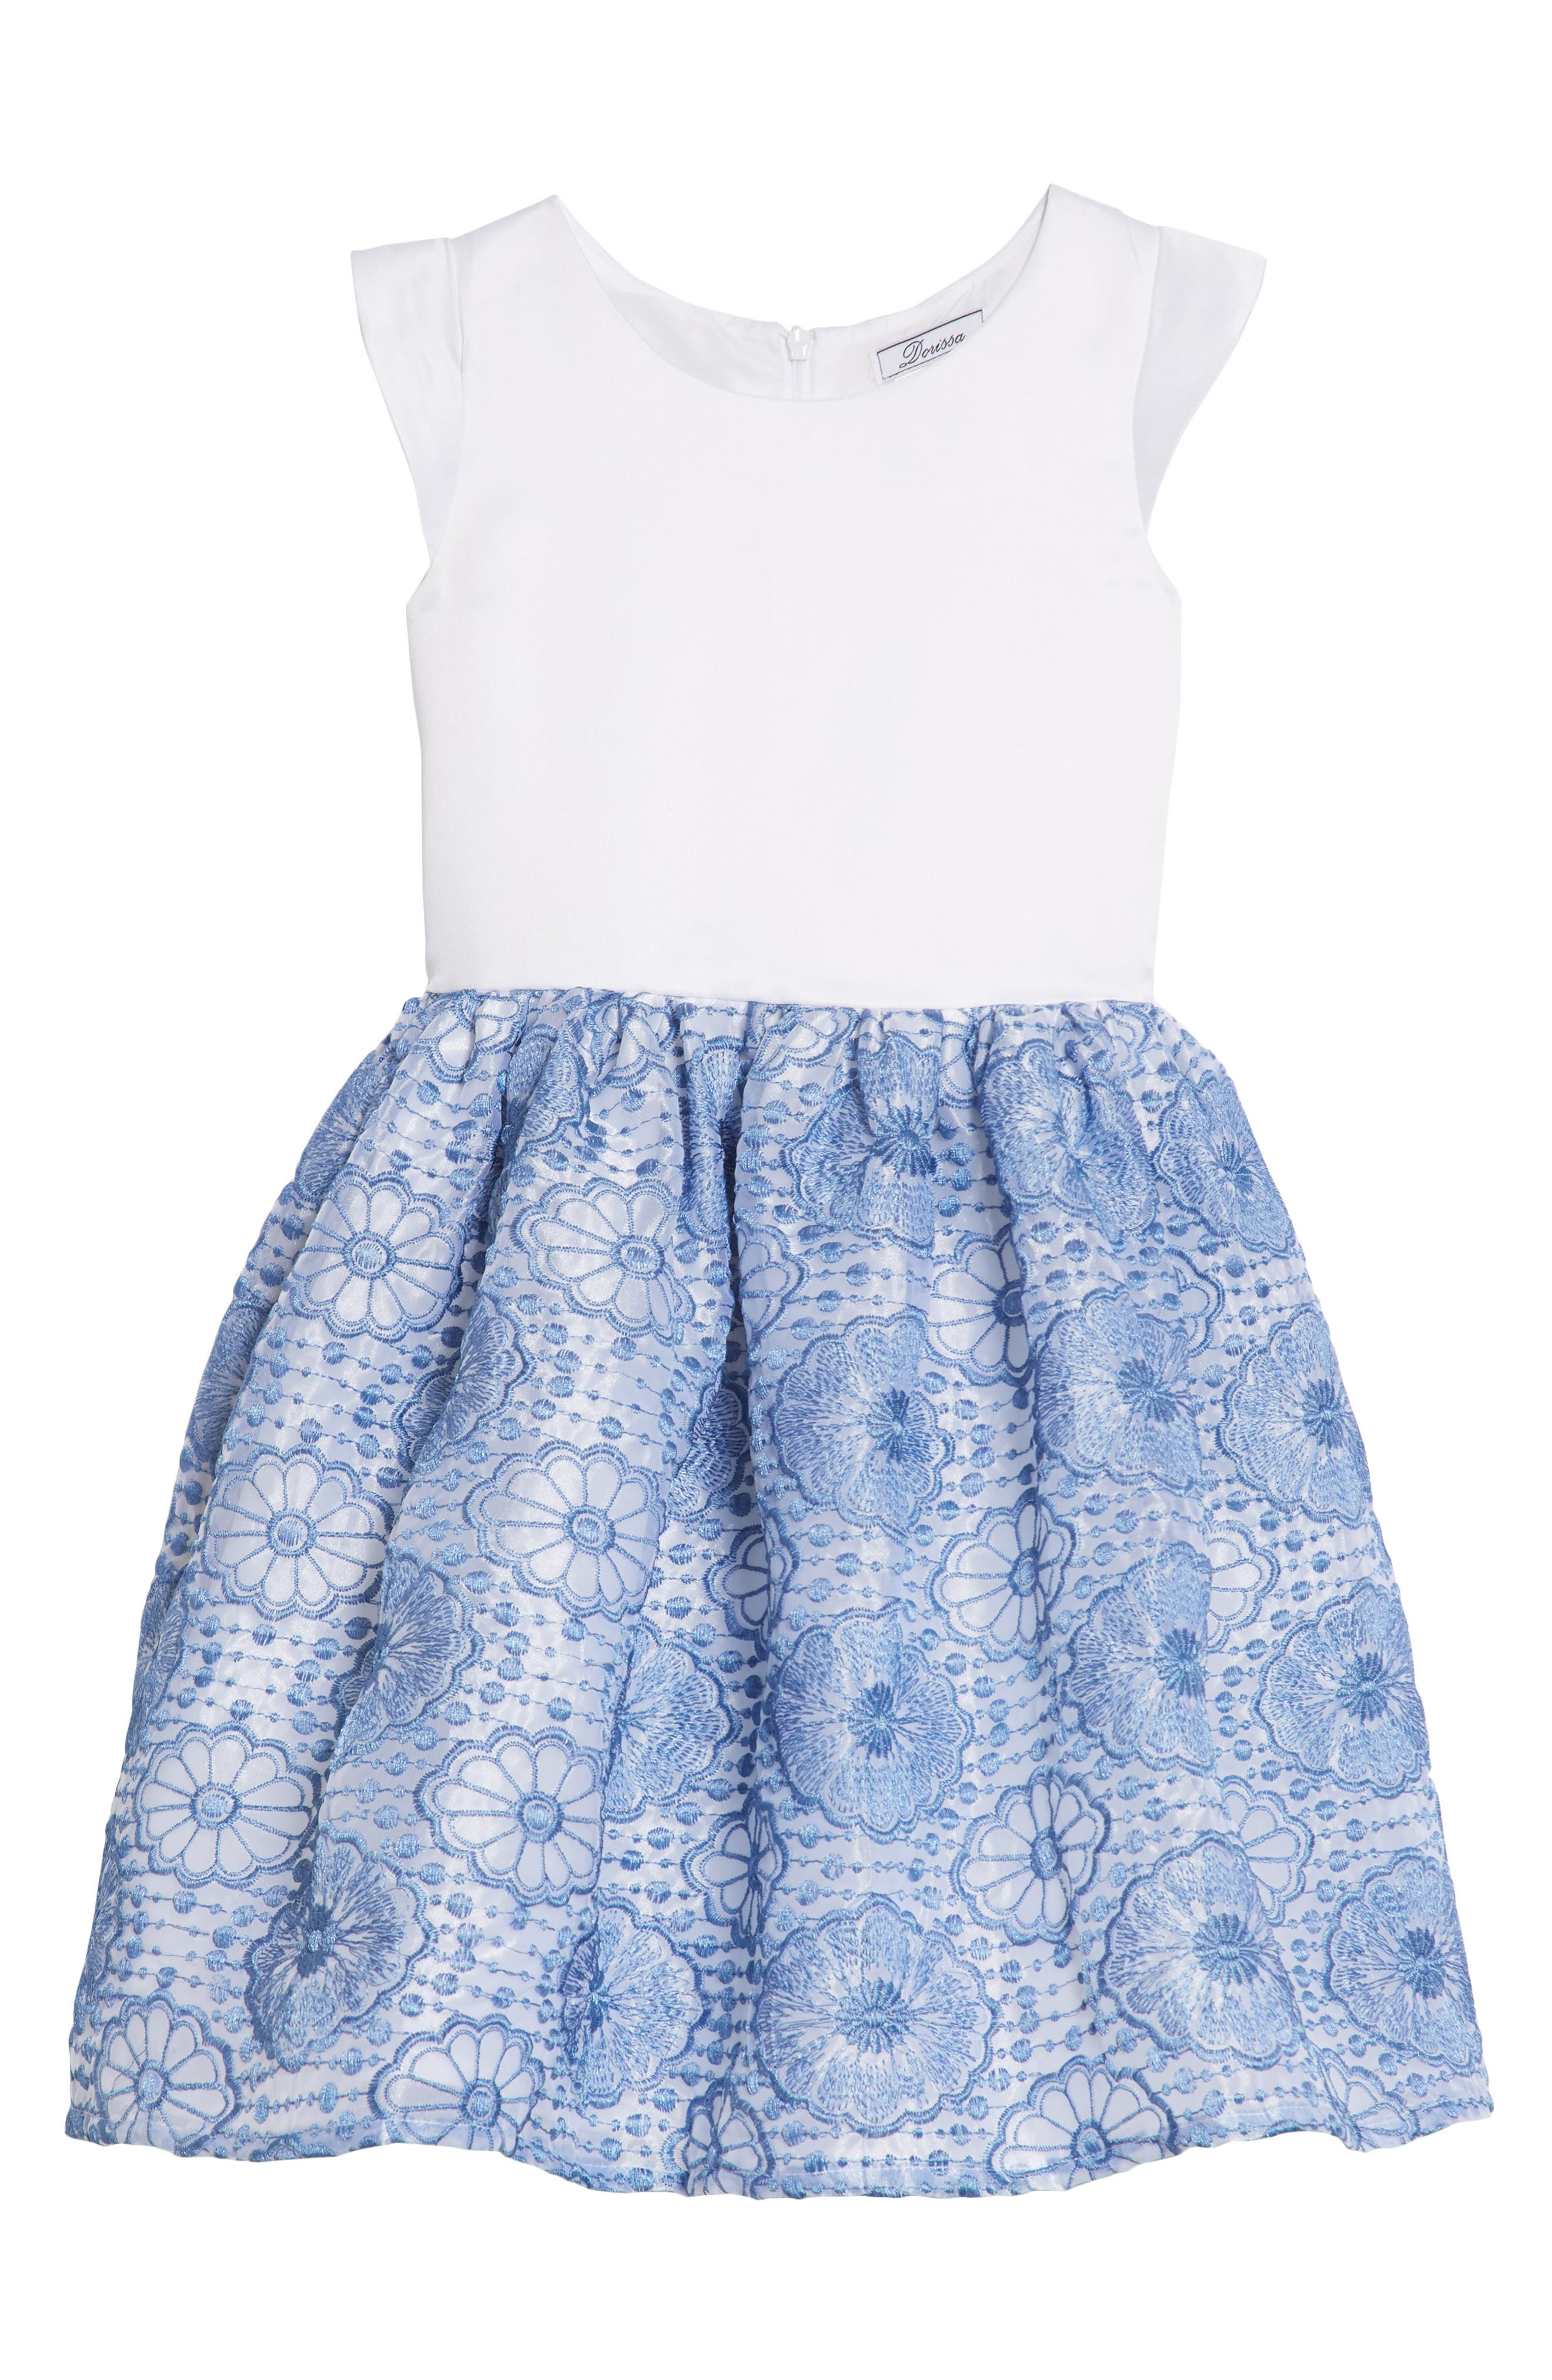 Lily Embroidered Dress,                             Main thumbnail 1, color,                             White/ Blue